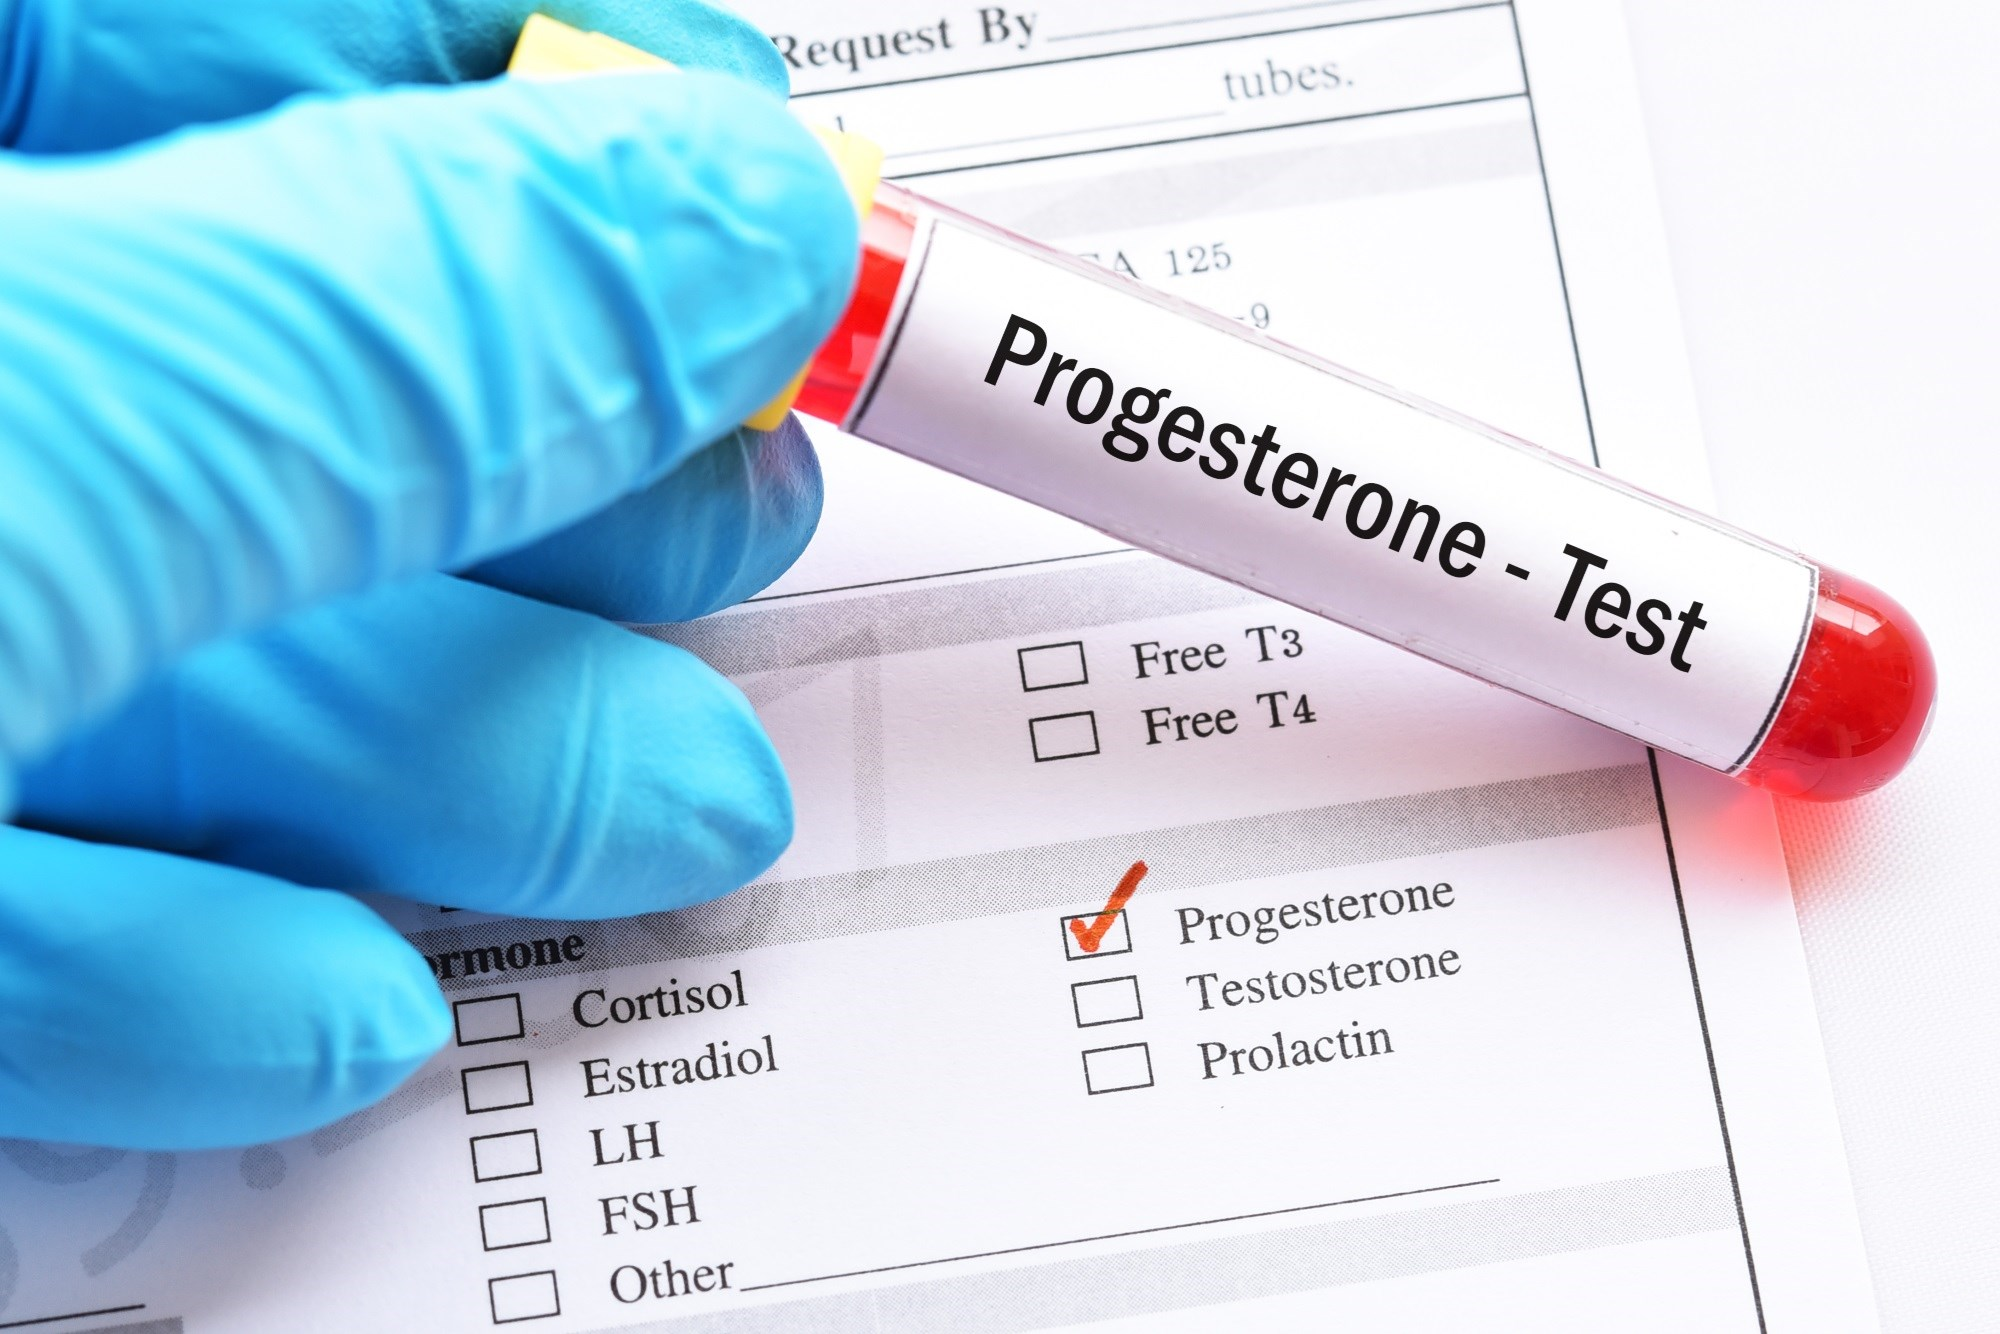 A low midluteal progesterone level ≤15.8 in patients taking clomiphene citrate was associated with low probability of live birth.